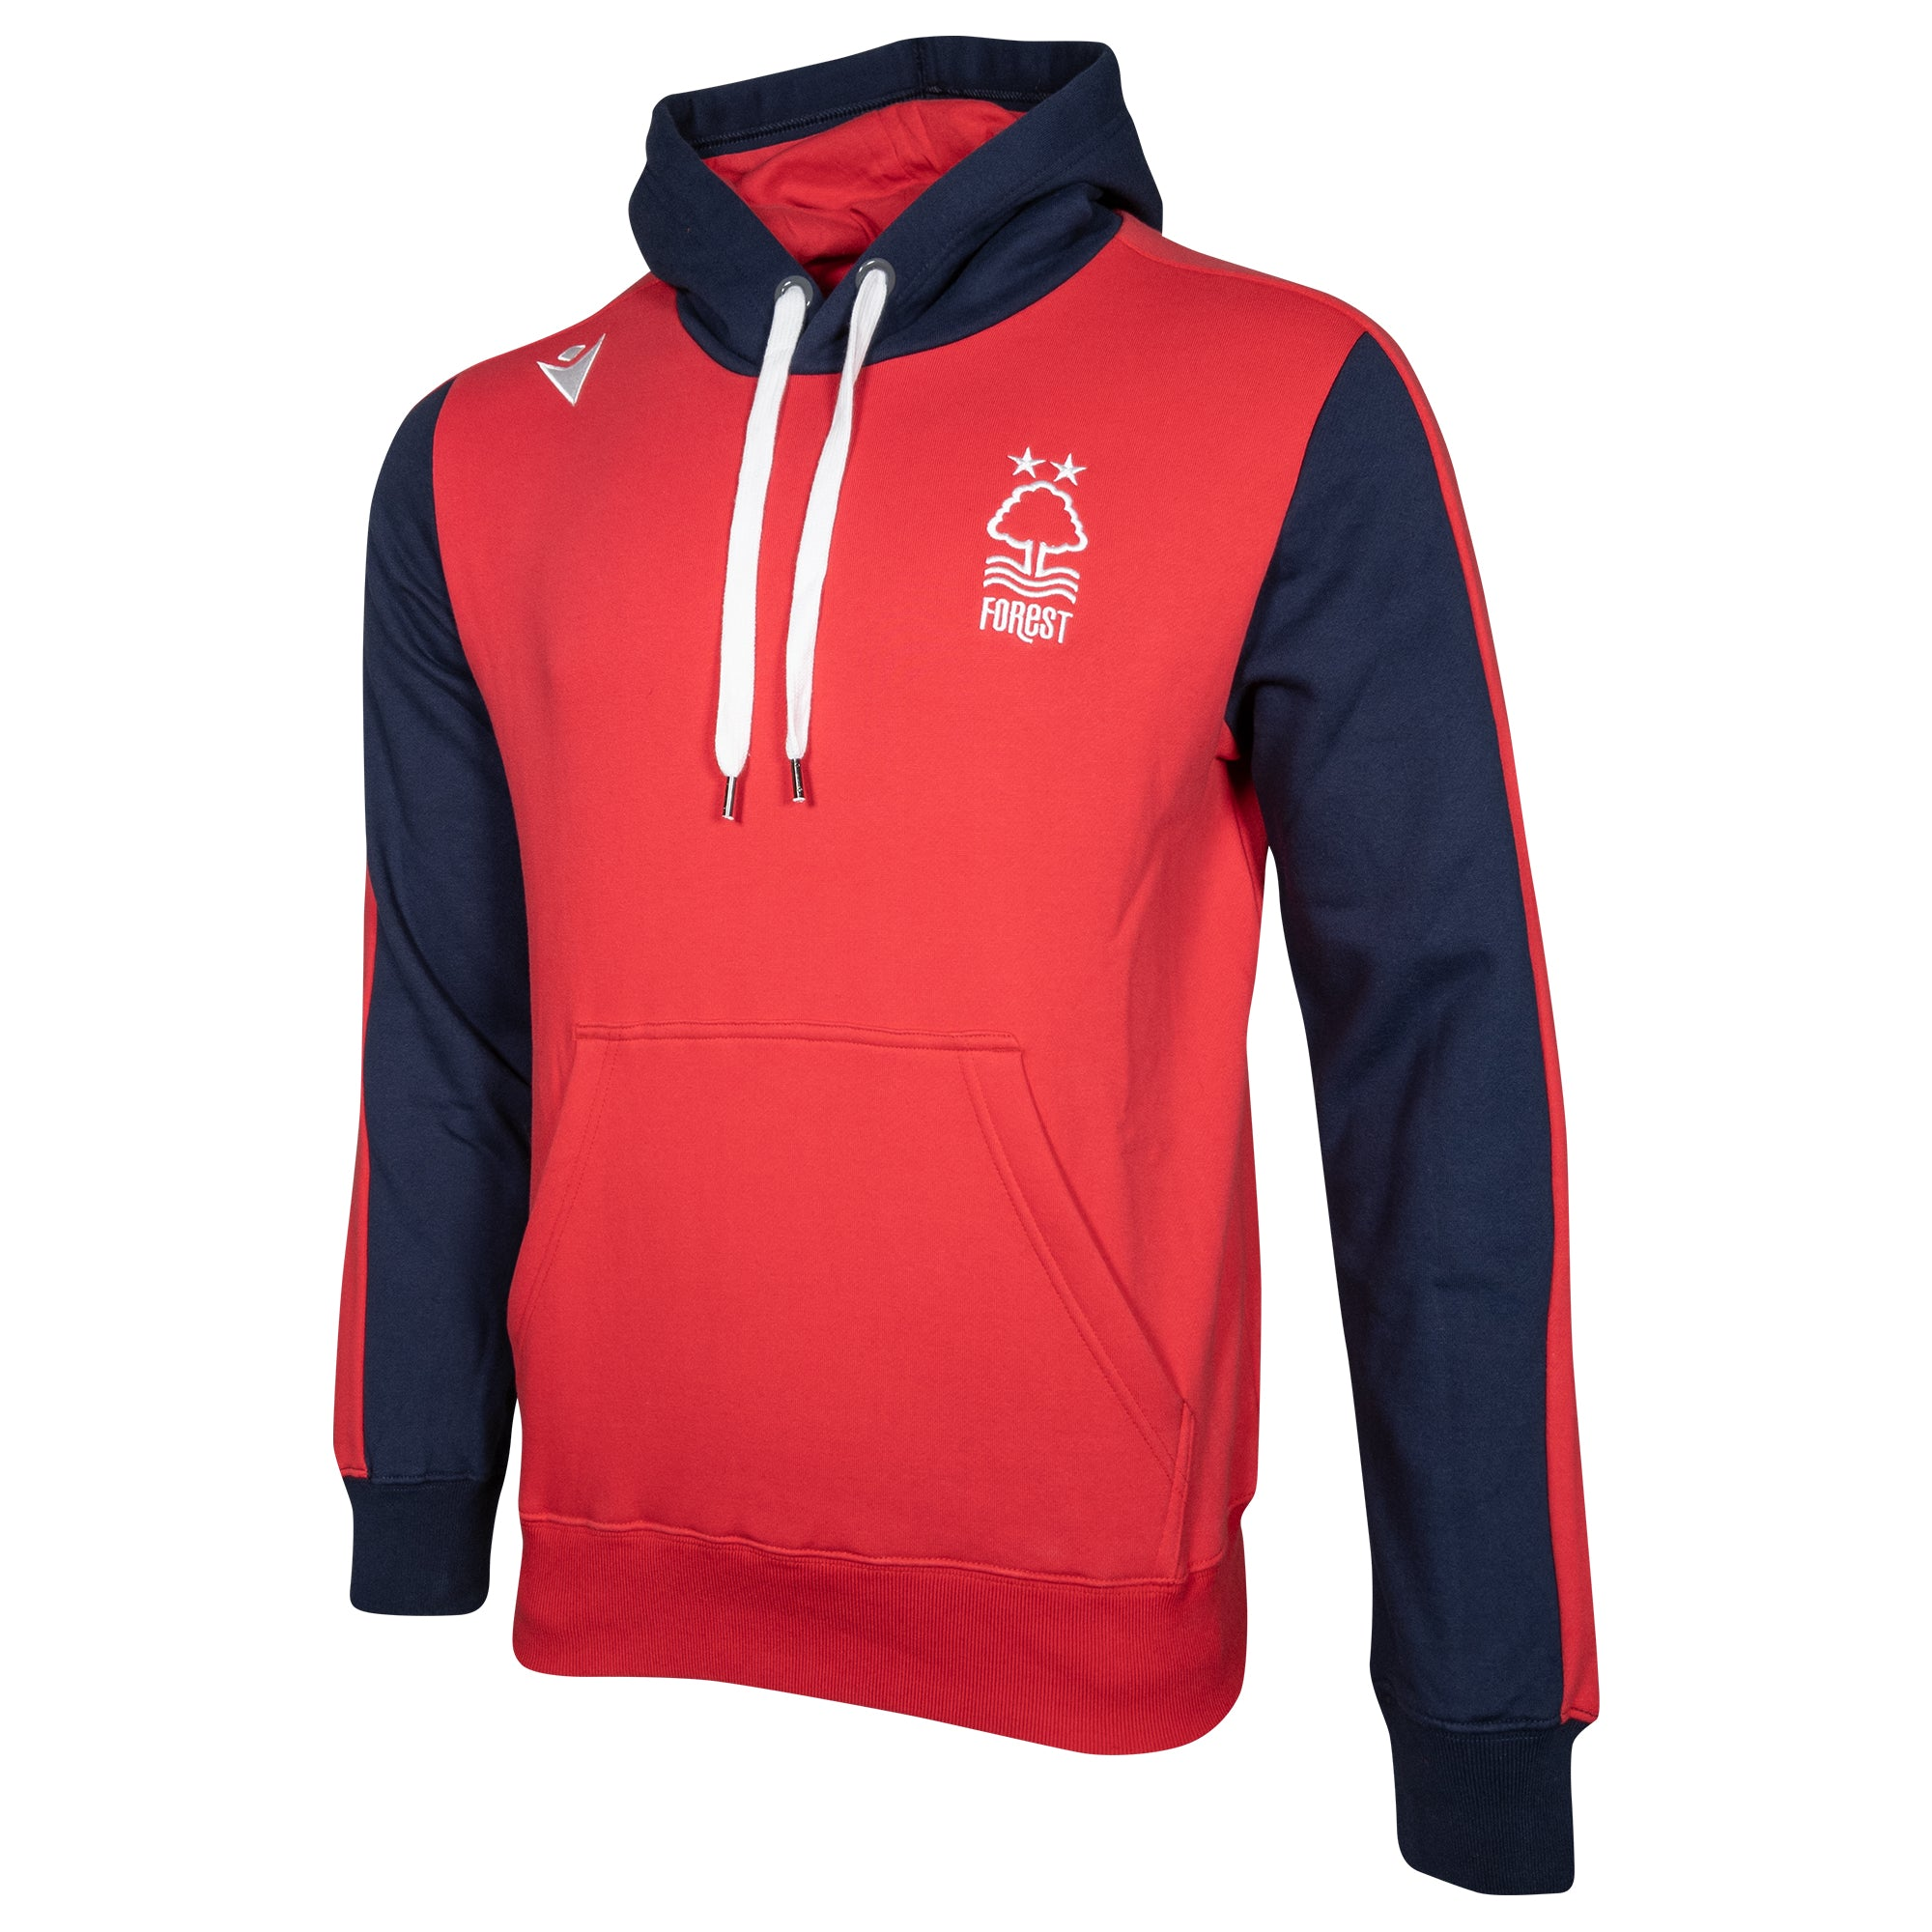 NFFC Mens Player Travel Hoodie 2020/21